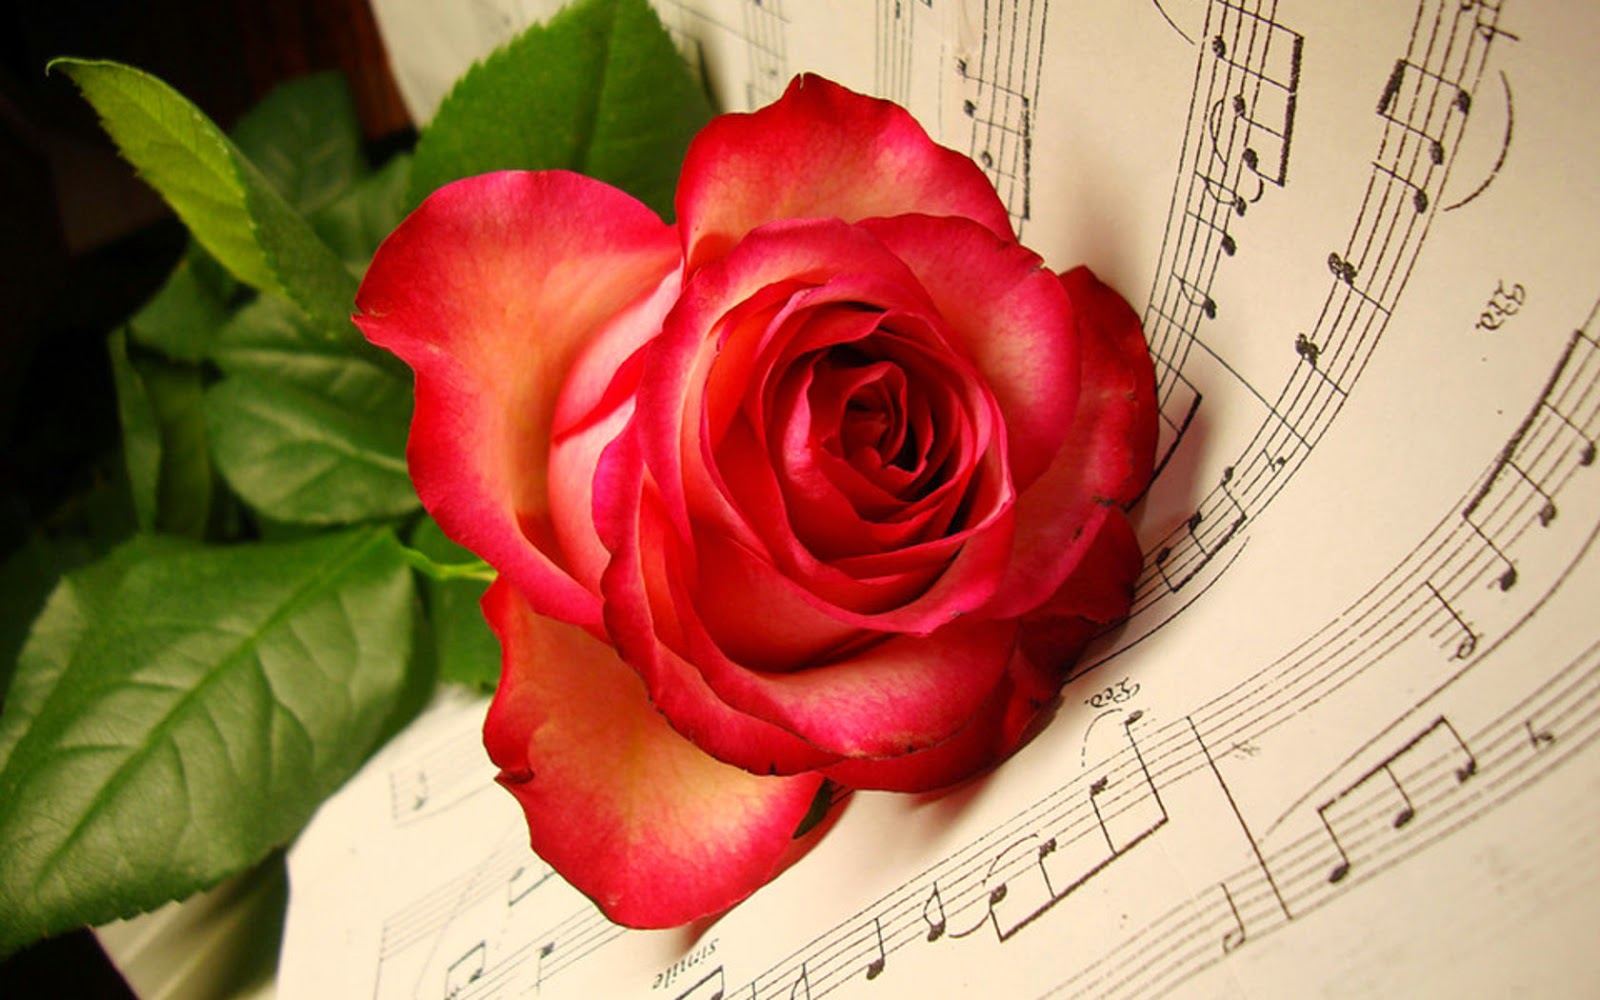 Red Rose HD Wallpapers For Wide Desktop Laptop Screen ~ Get All Kind of Tips and Software, Free ...